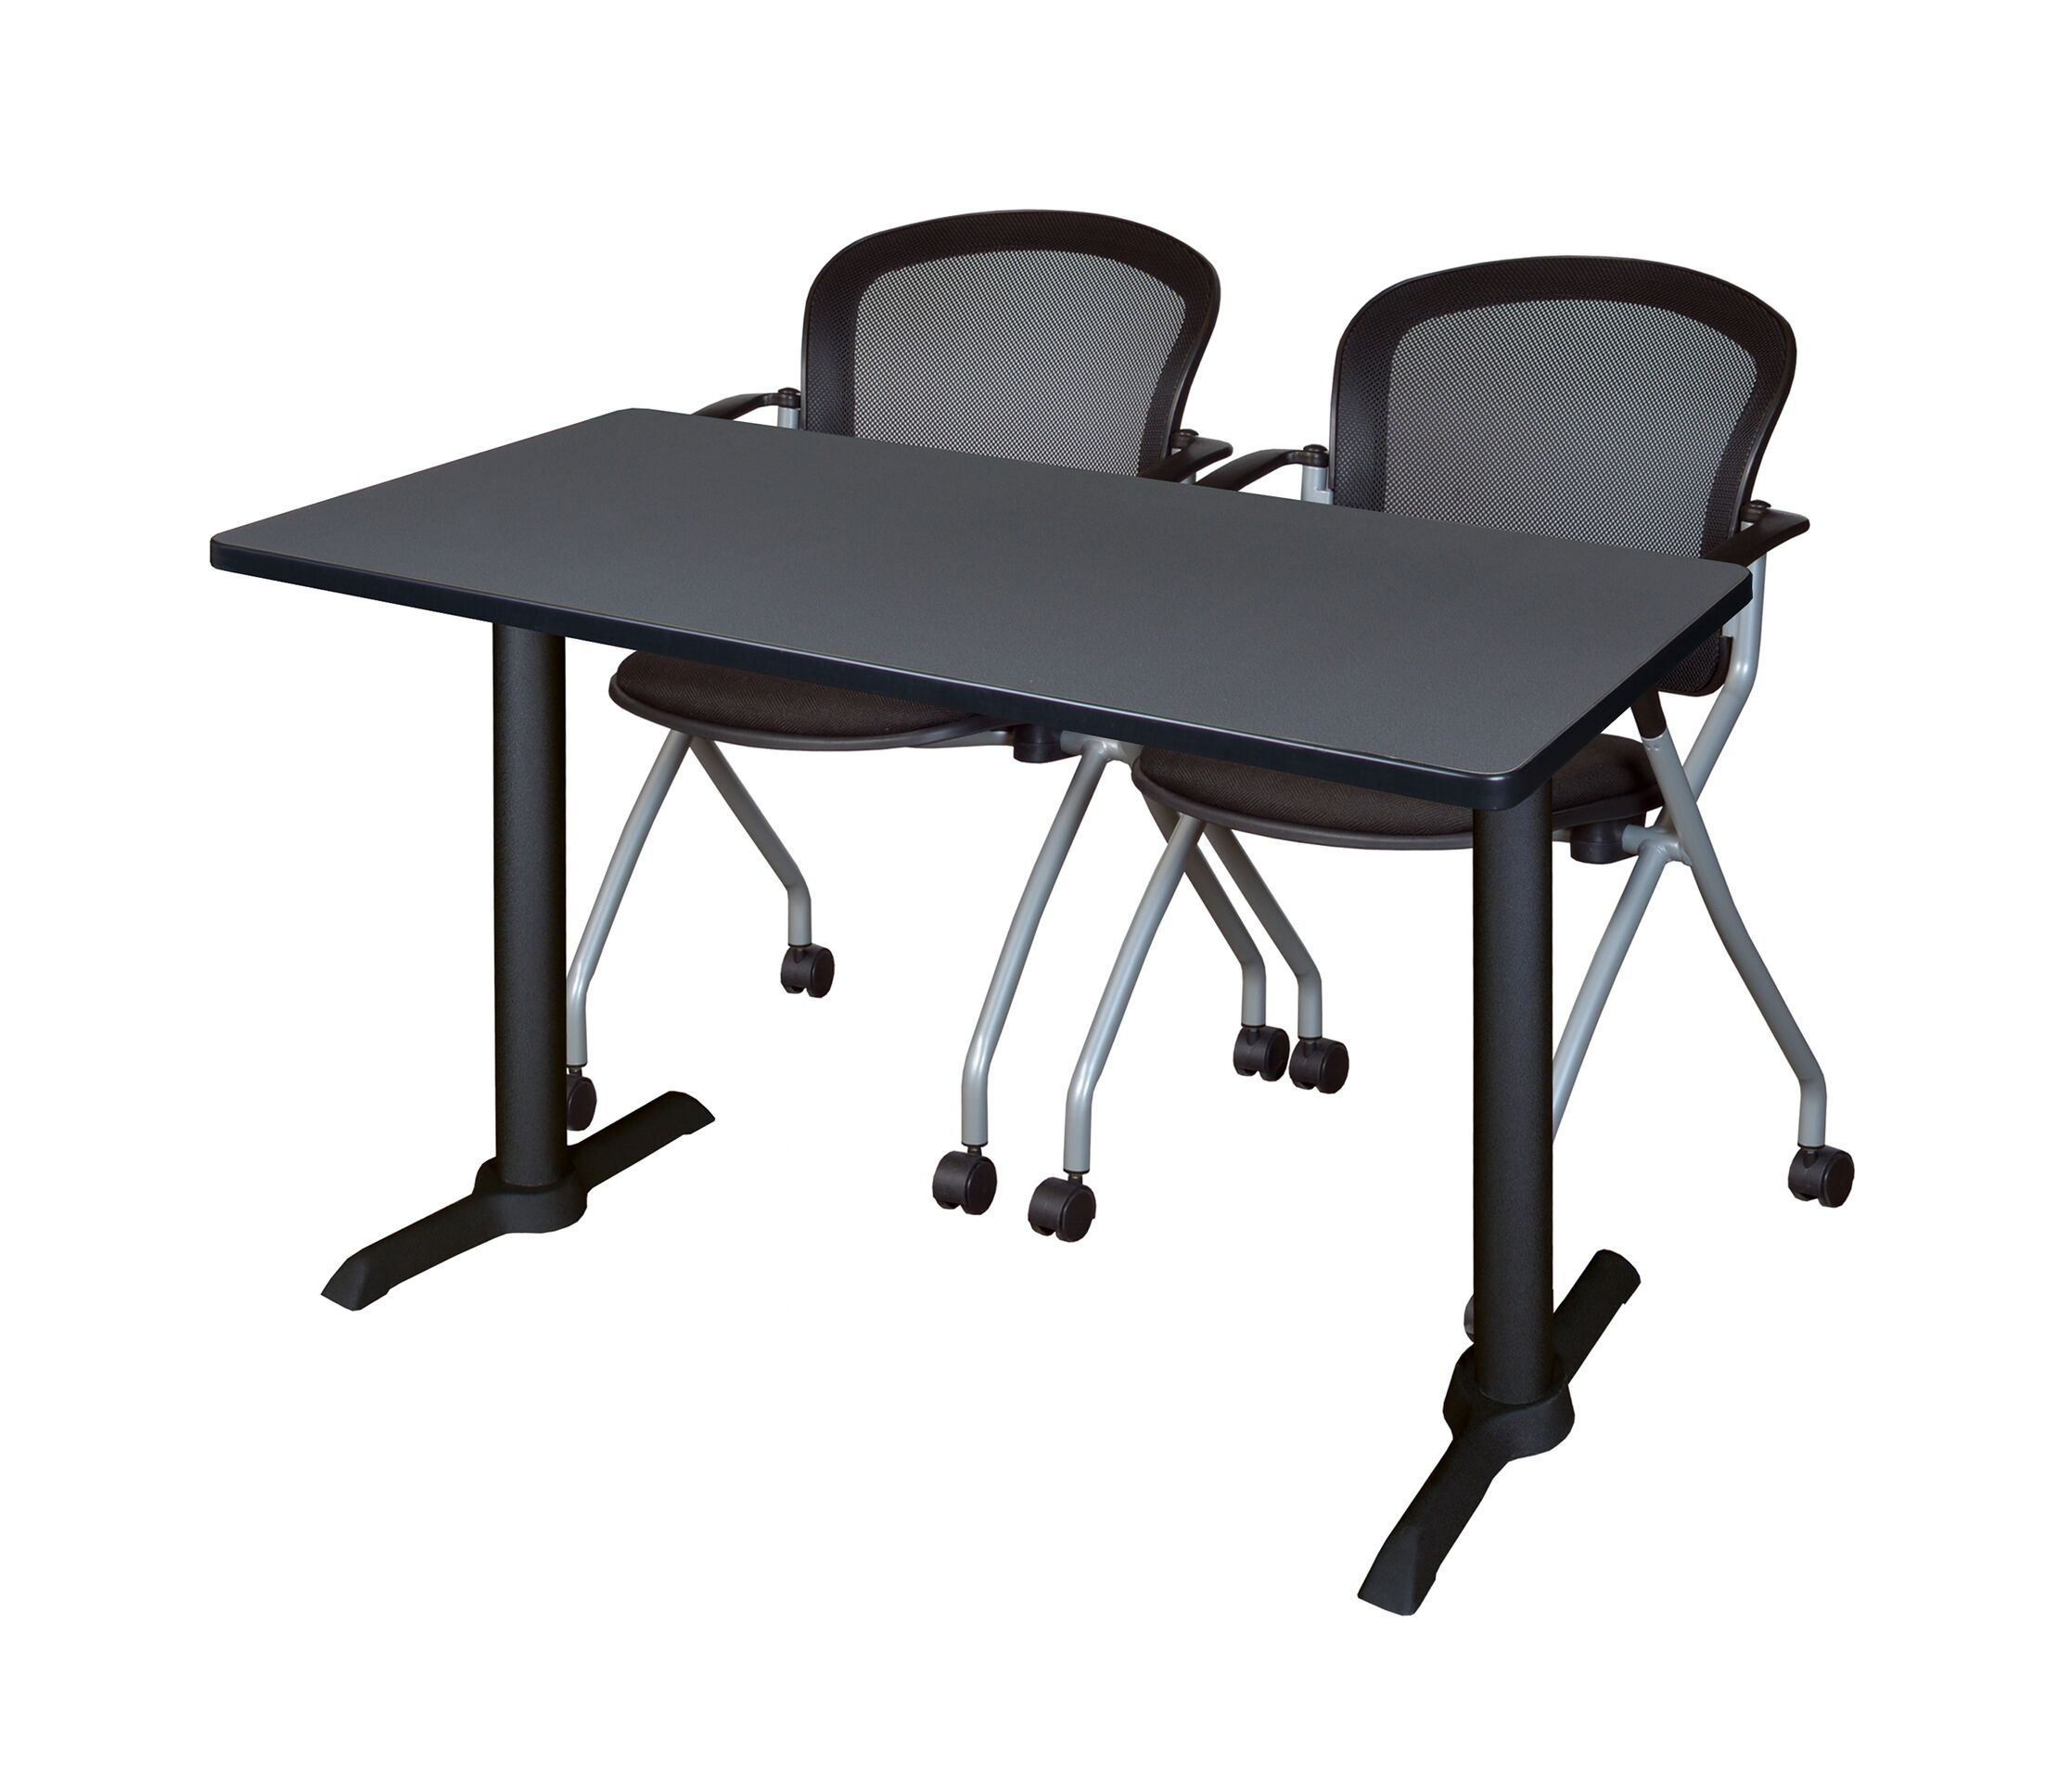 Vargas Training Table with Wheels Size: 29